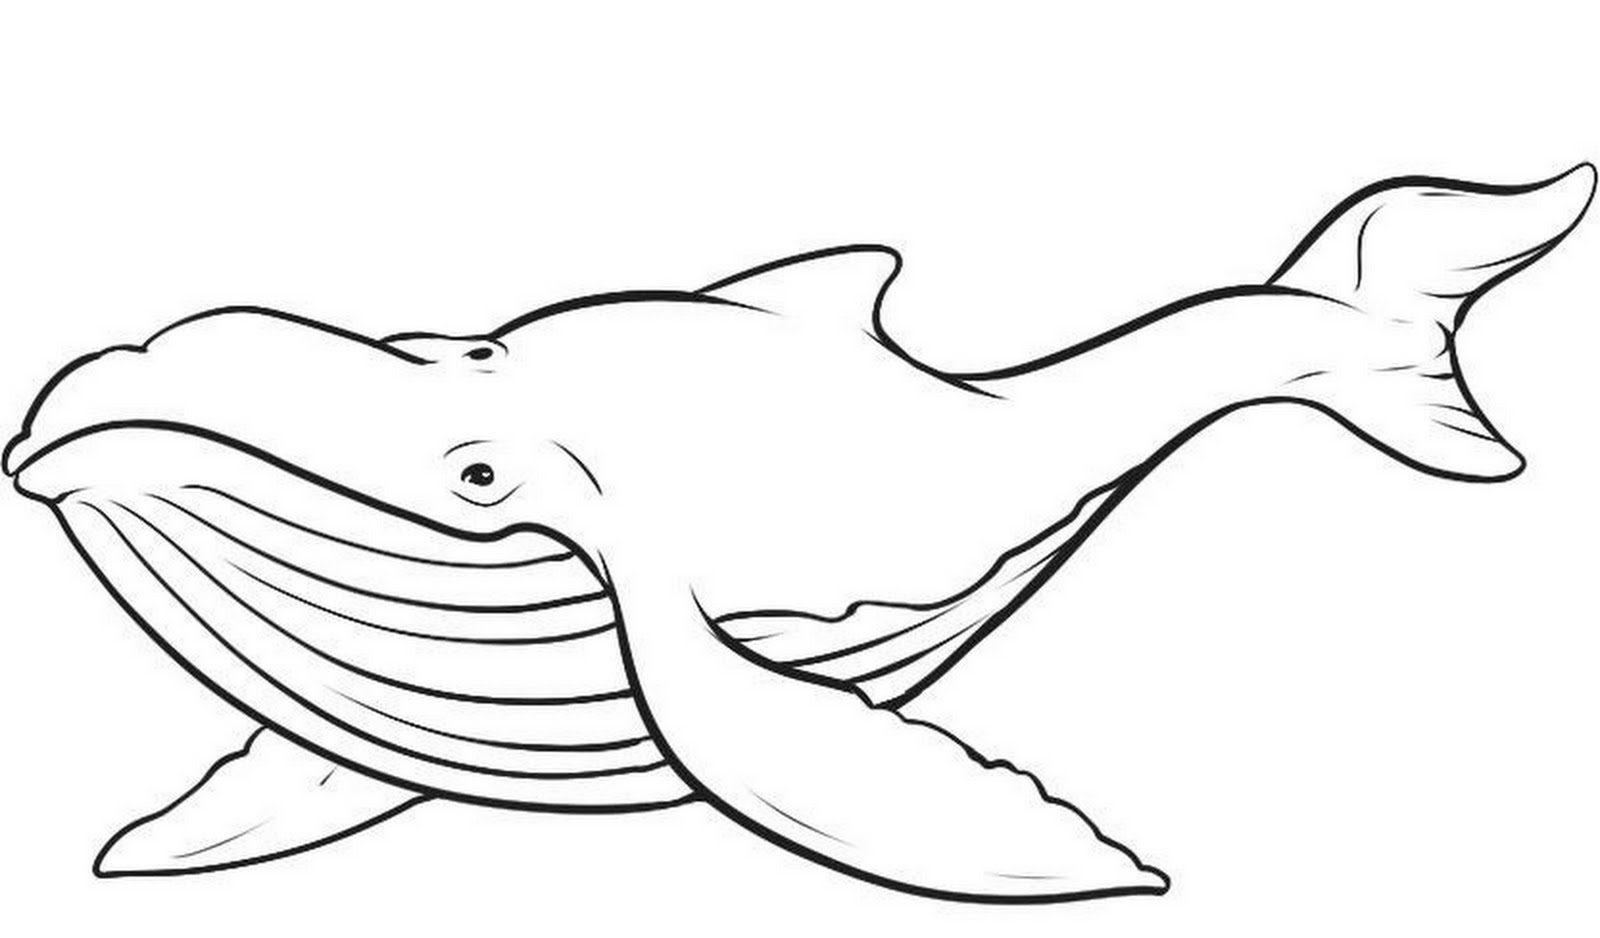 Whale Shark Line Art : Whale line drawing clipart best